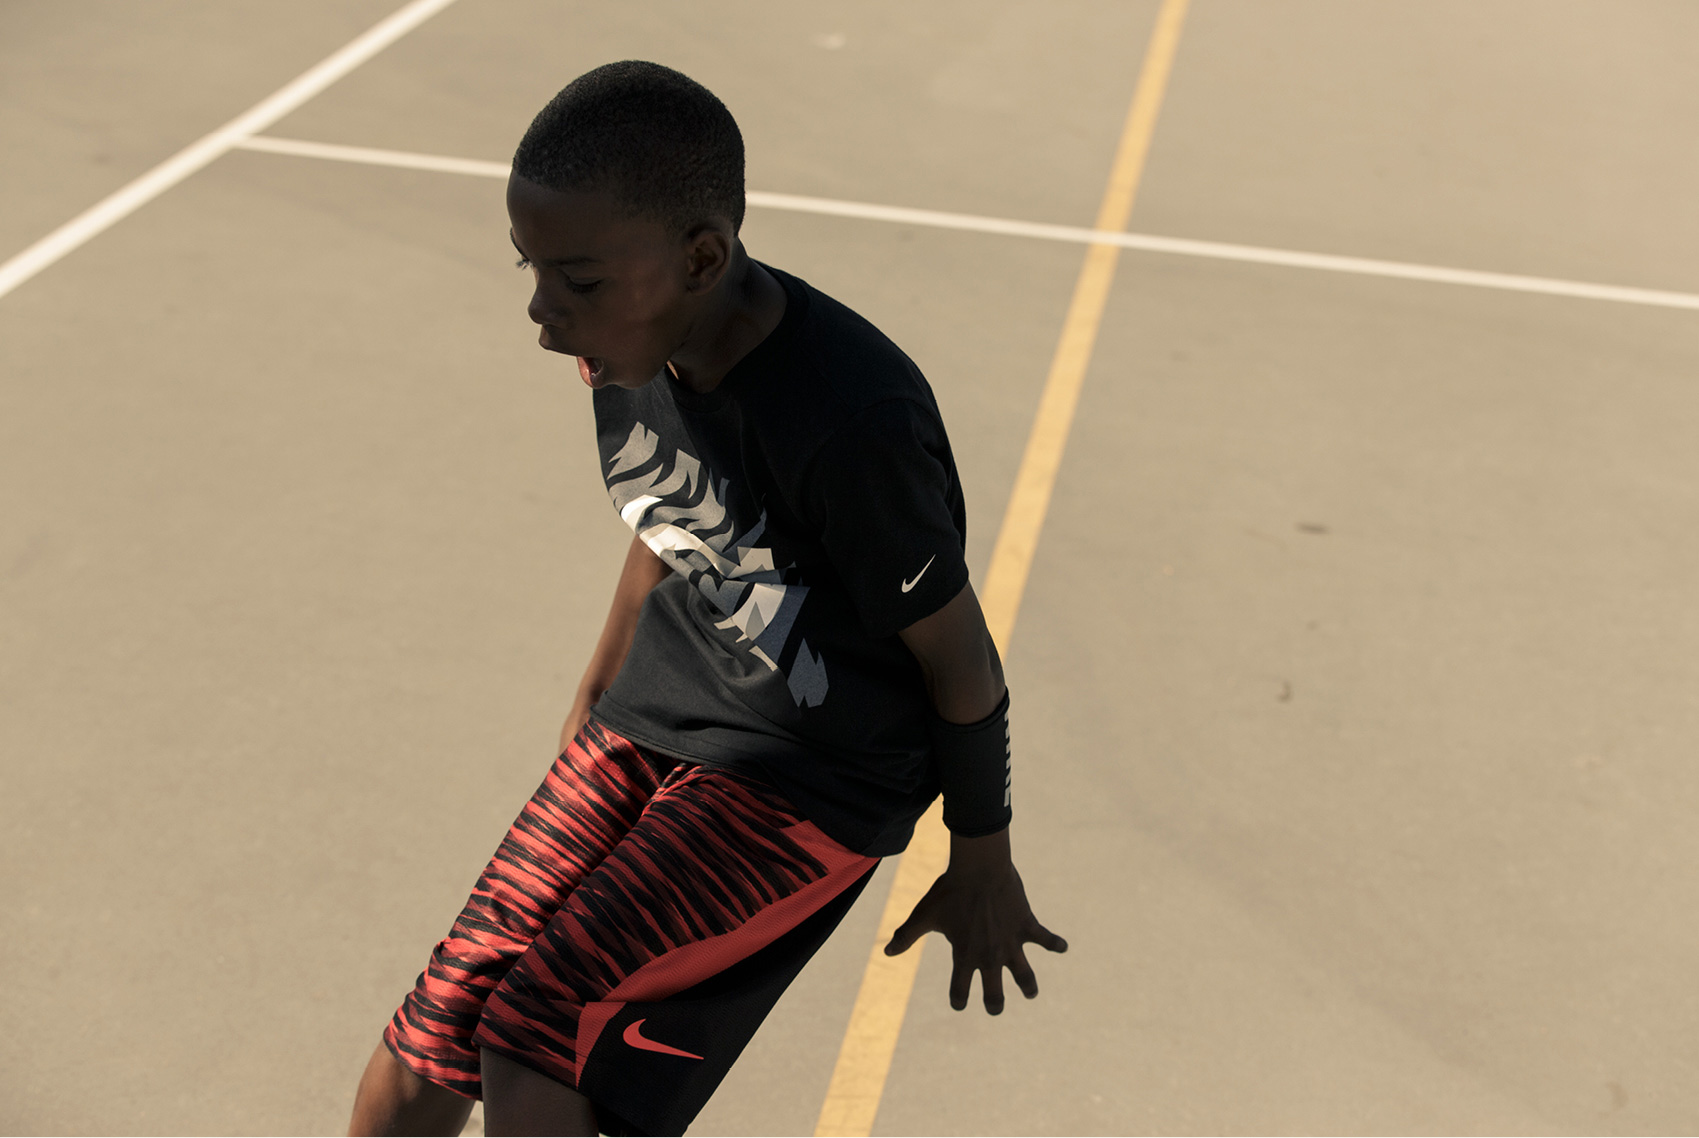 sam_kweskin_nike_young_athletes_basketball_soccer4